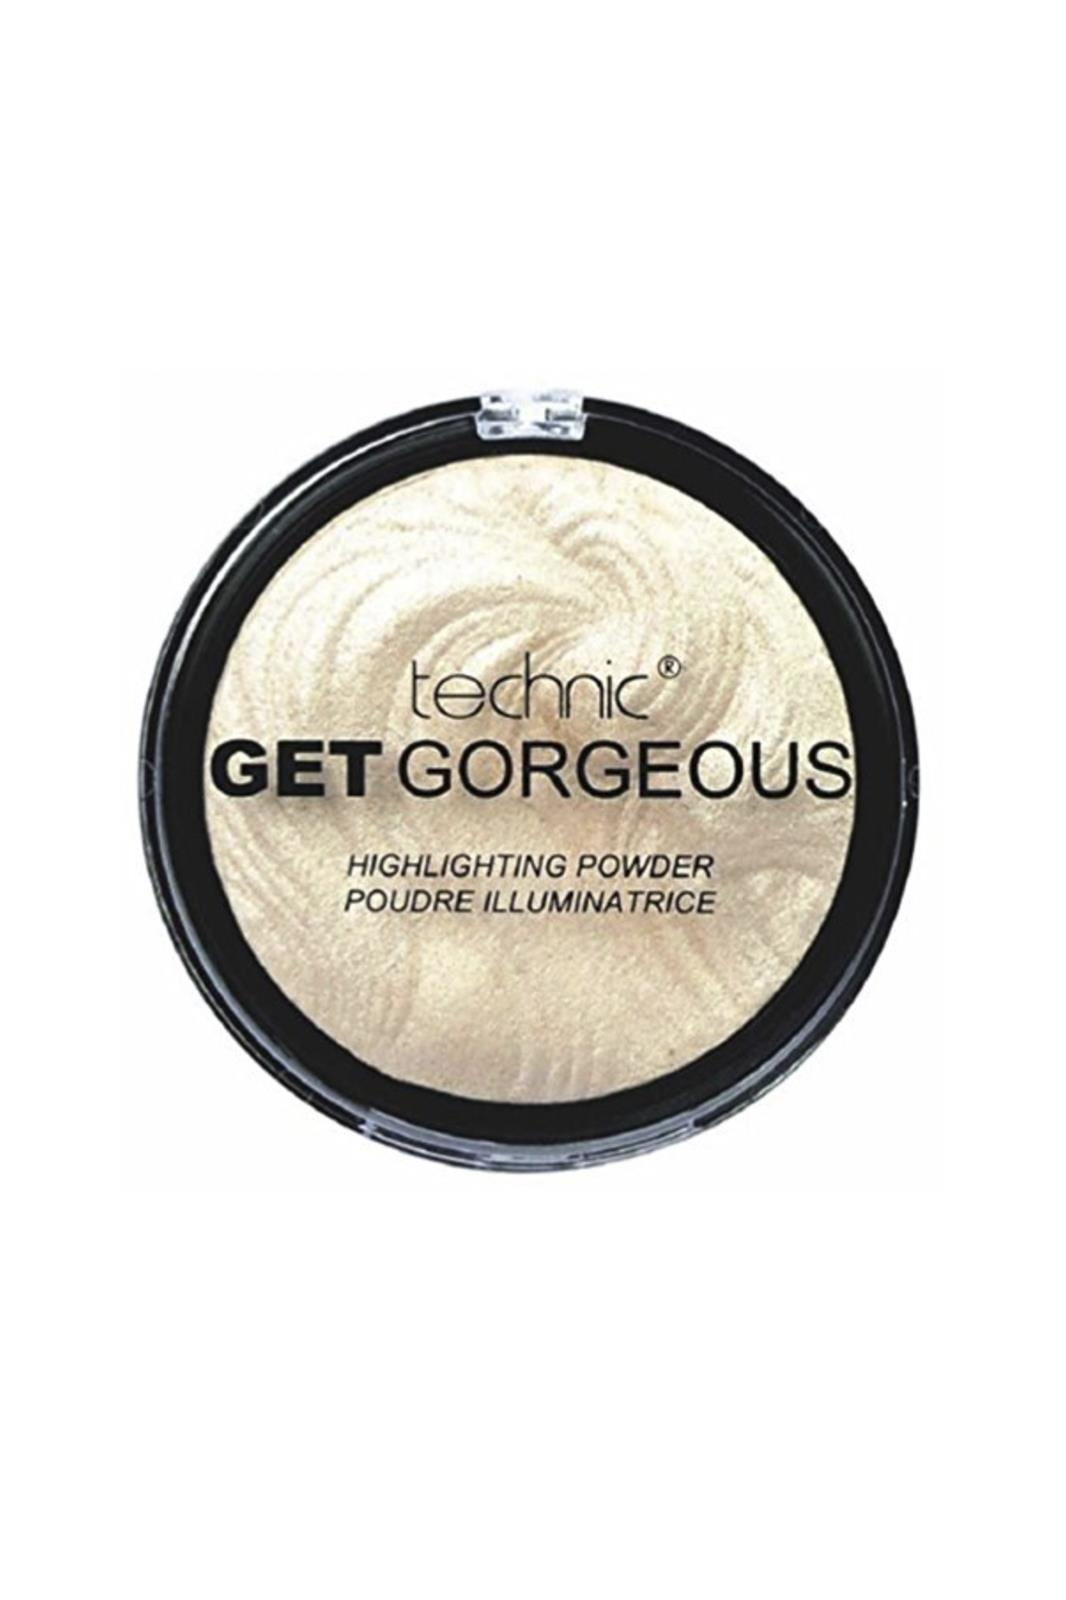 Technic Get Gorgeus Highlighter, 4,99€